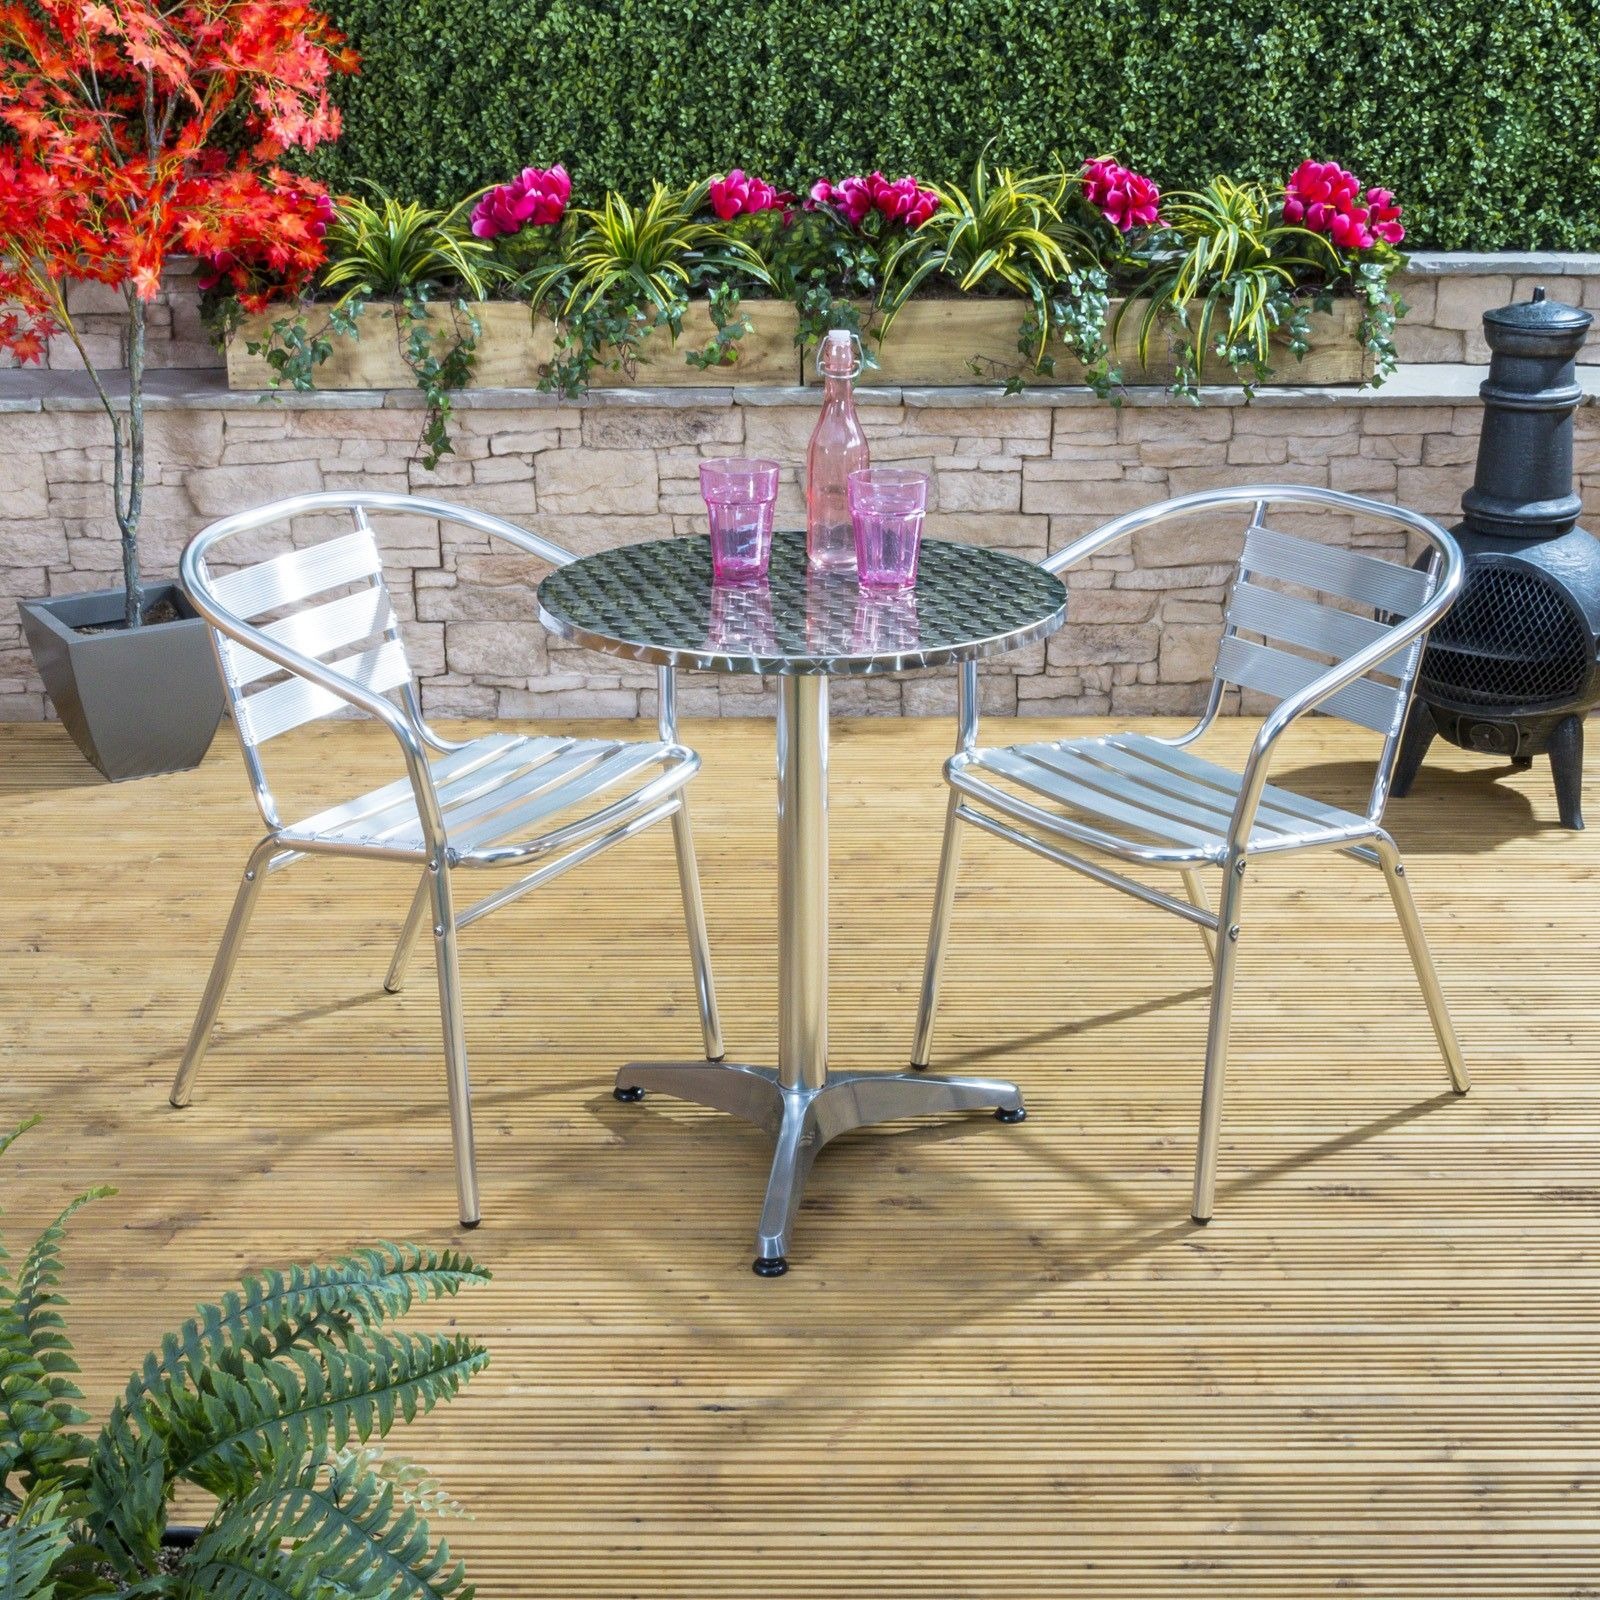 Bistro Tables And Chair For Sale With Images Outdoor Patio Decor Outdoor Patio Furniture Sets Patio Decor